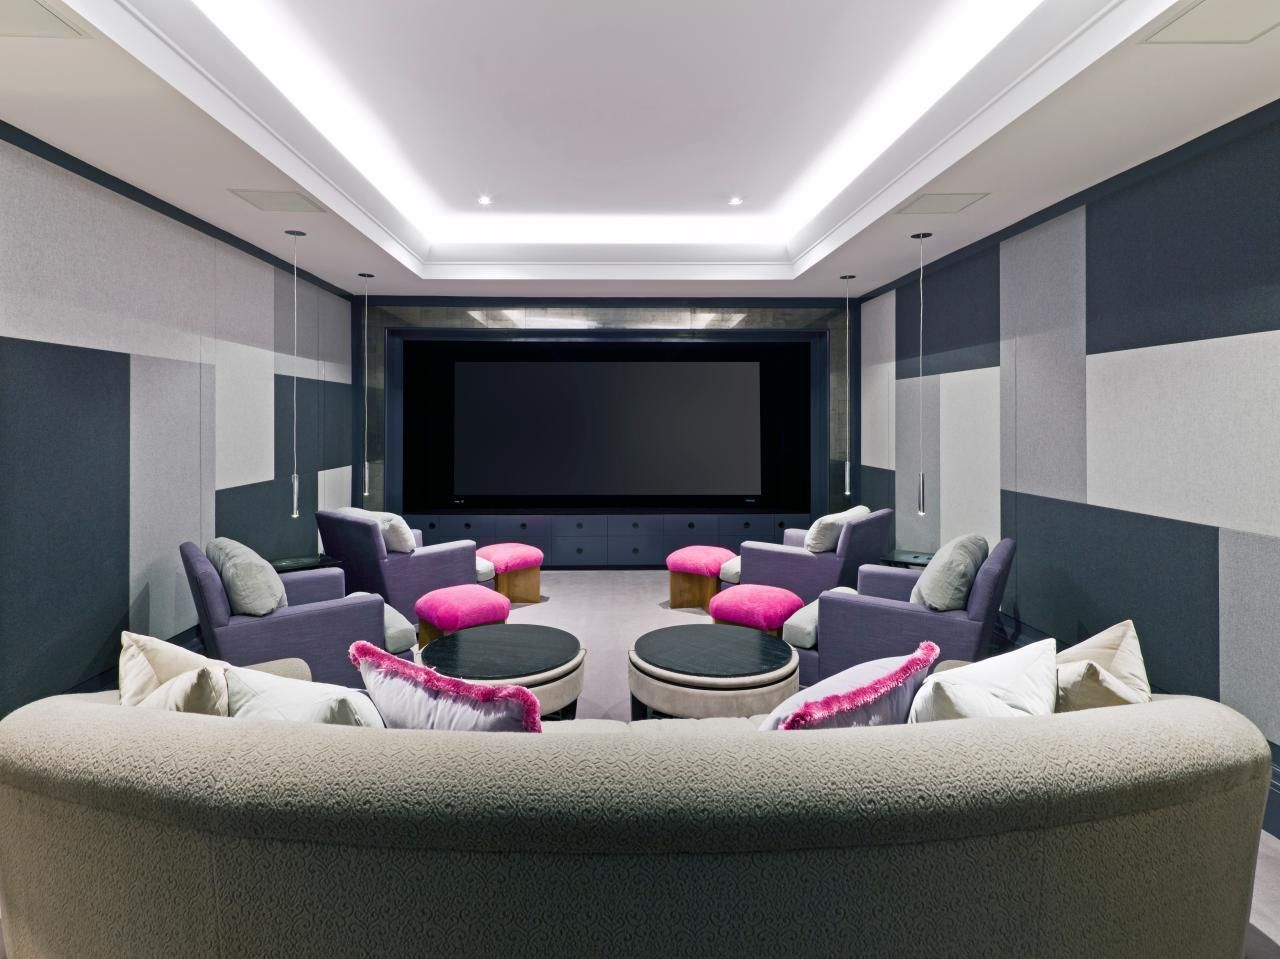 Media Room Furniture Accessories Pictures Options Tips